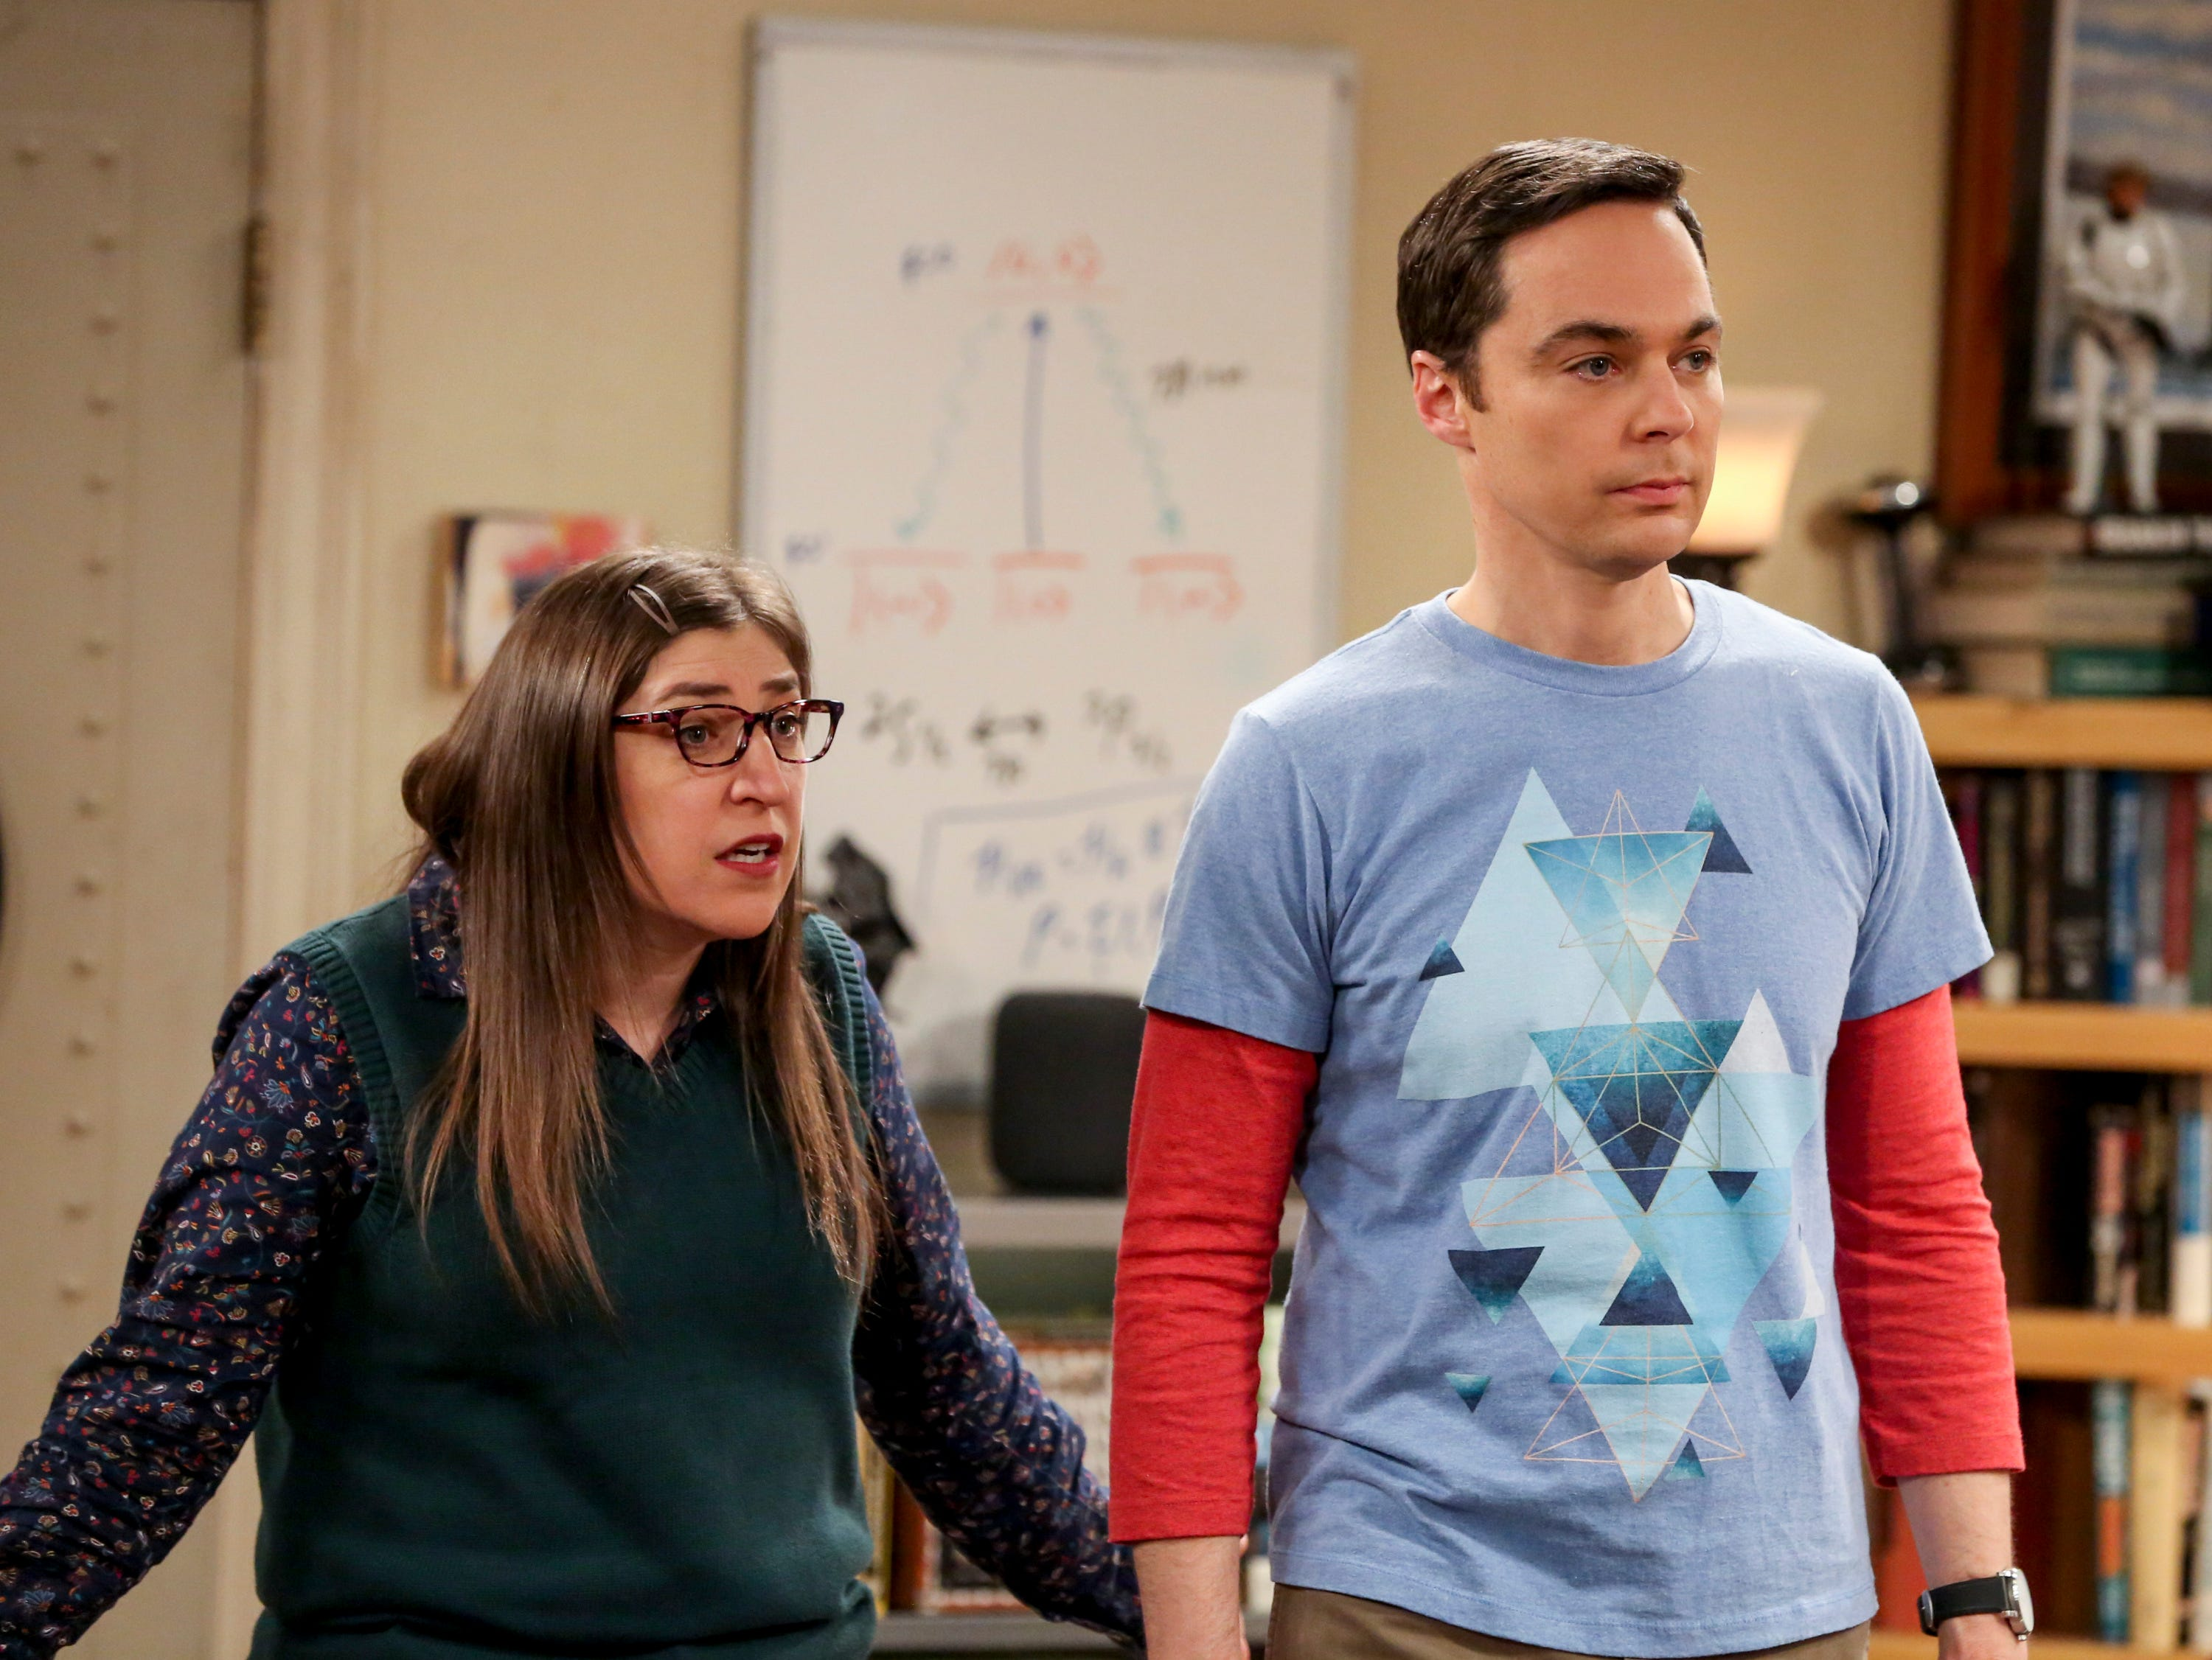 &apos Big Bang Theory&apos star Mayim Bialik shuts down inappropriate